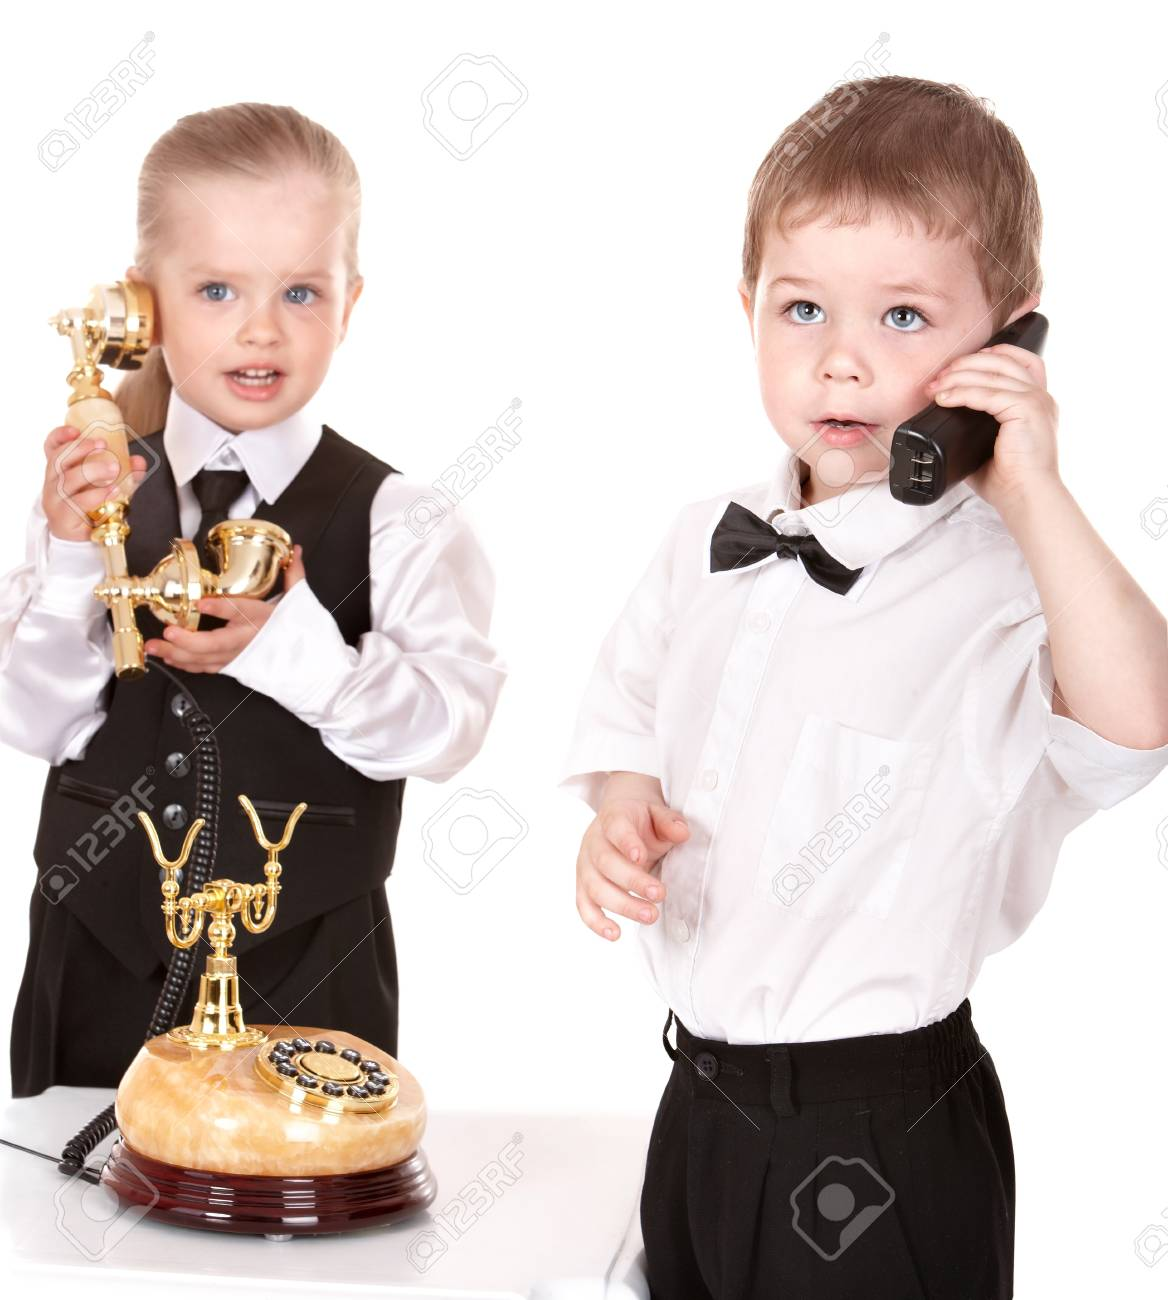 Children in business suit with telephone. Isolated. Stock Photo - 8332627